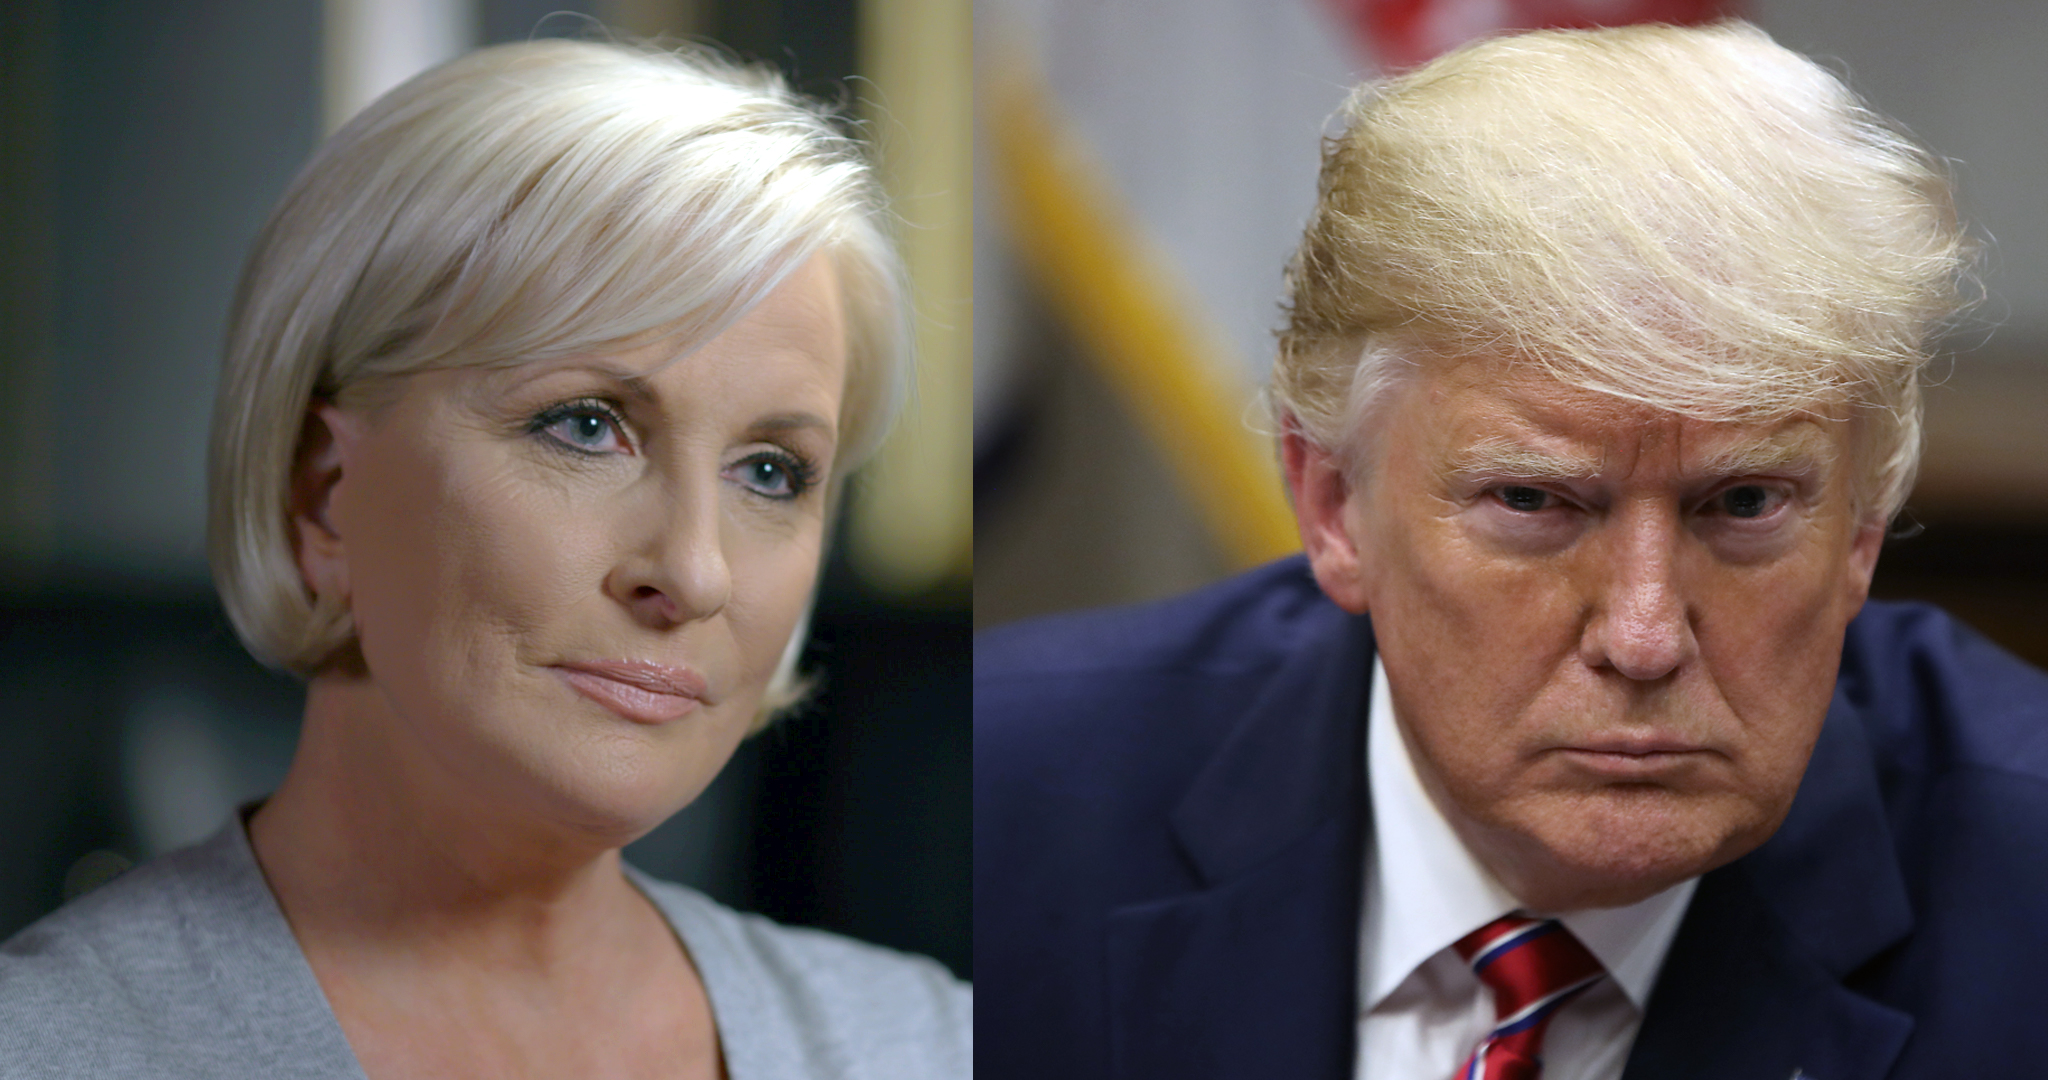 Mika Brzezinski on Trump's attacks: 'It has gotten scary'